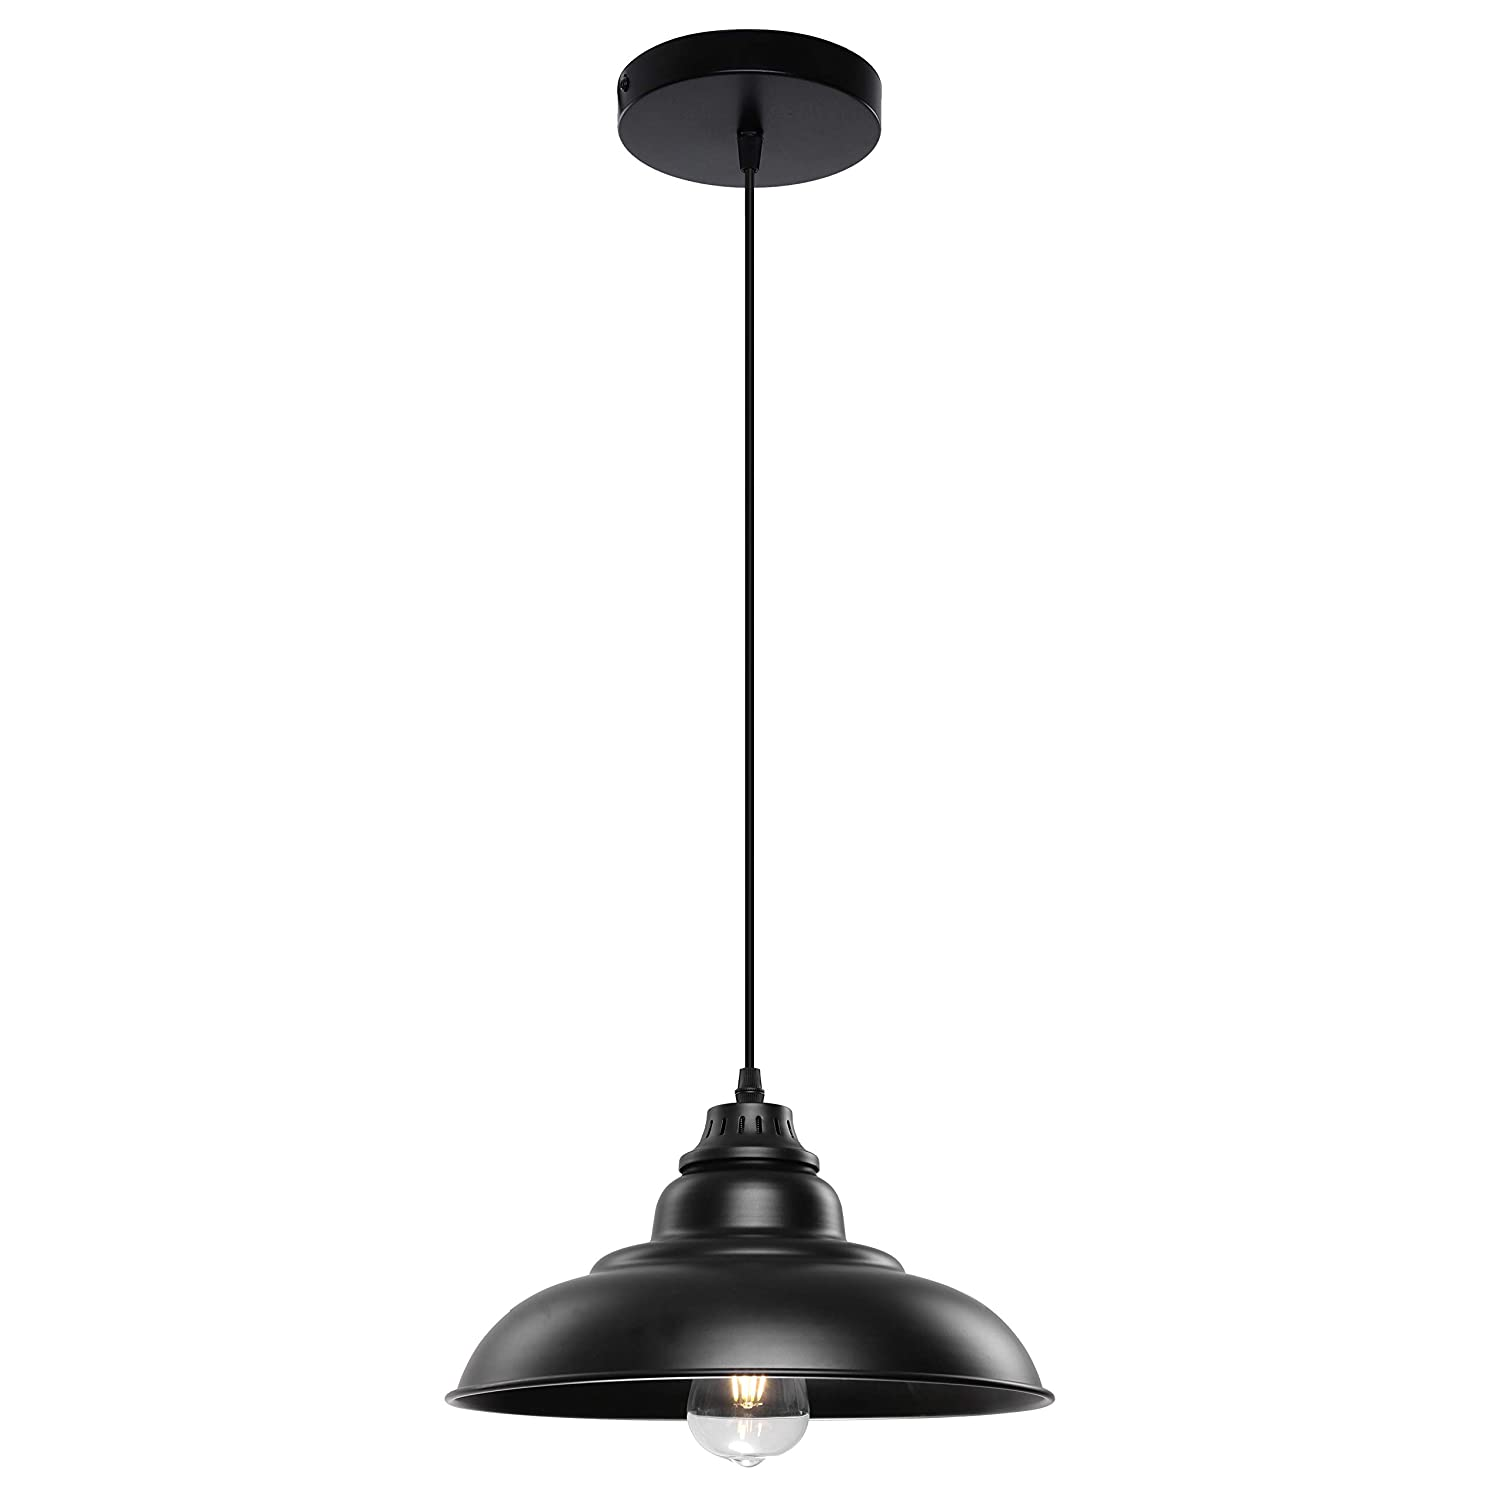 Pendant Lighting, Lika Industrial Black Hanging Pendant with Metal Shade, Lighting fixtures Ceiling for Dining Room, Kitchen Island, Barn